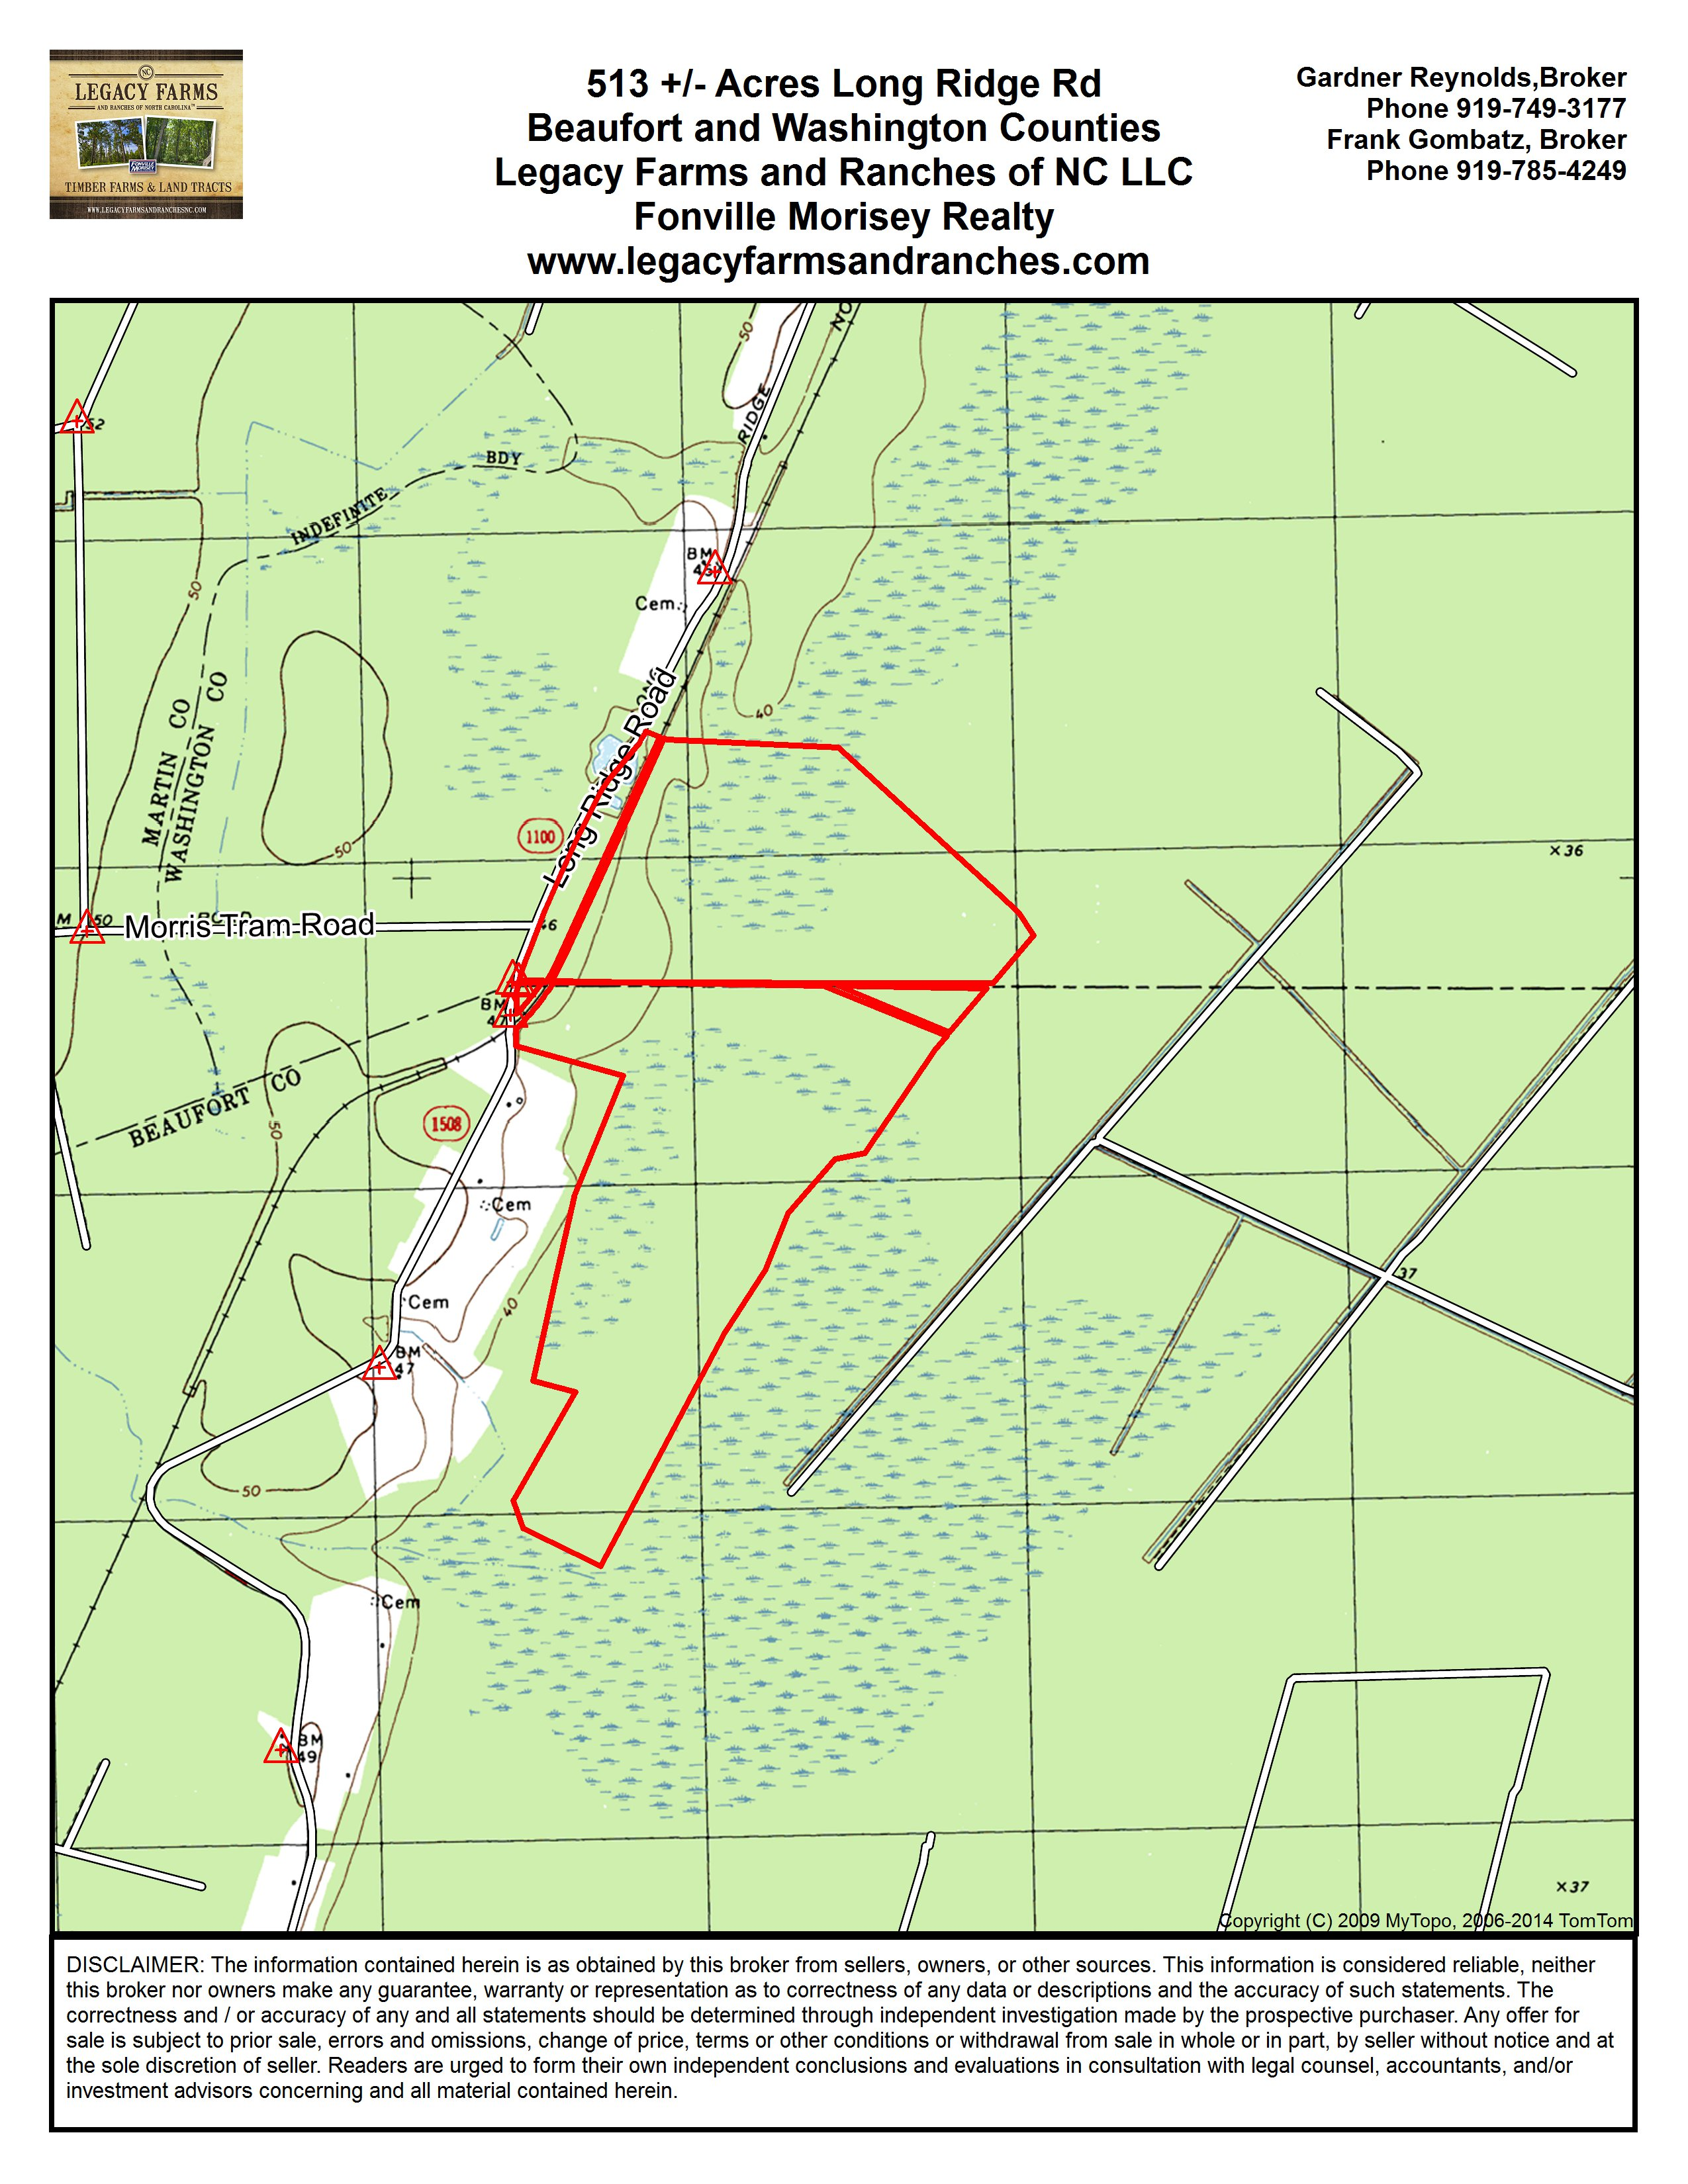 513 Acres for Sale Washington and Beaufort County NC Line